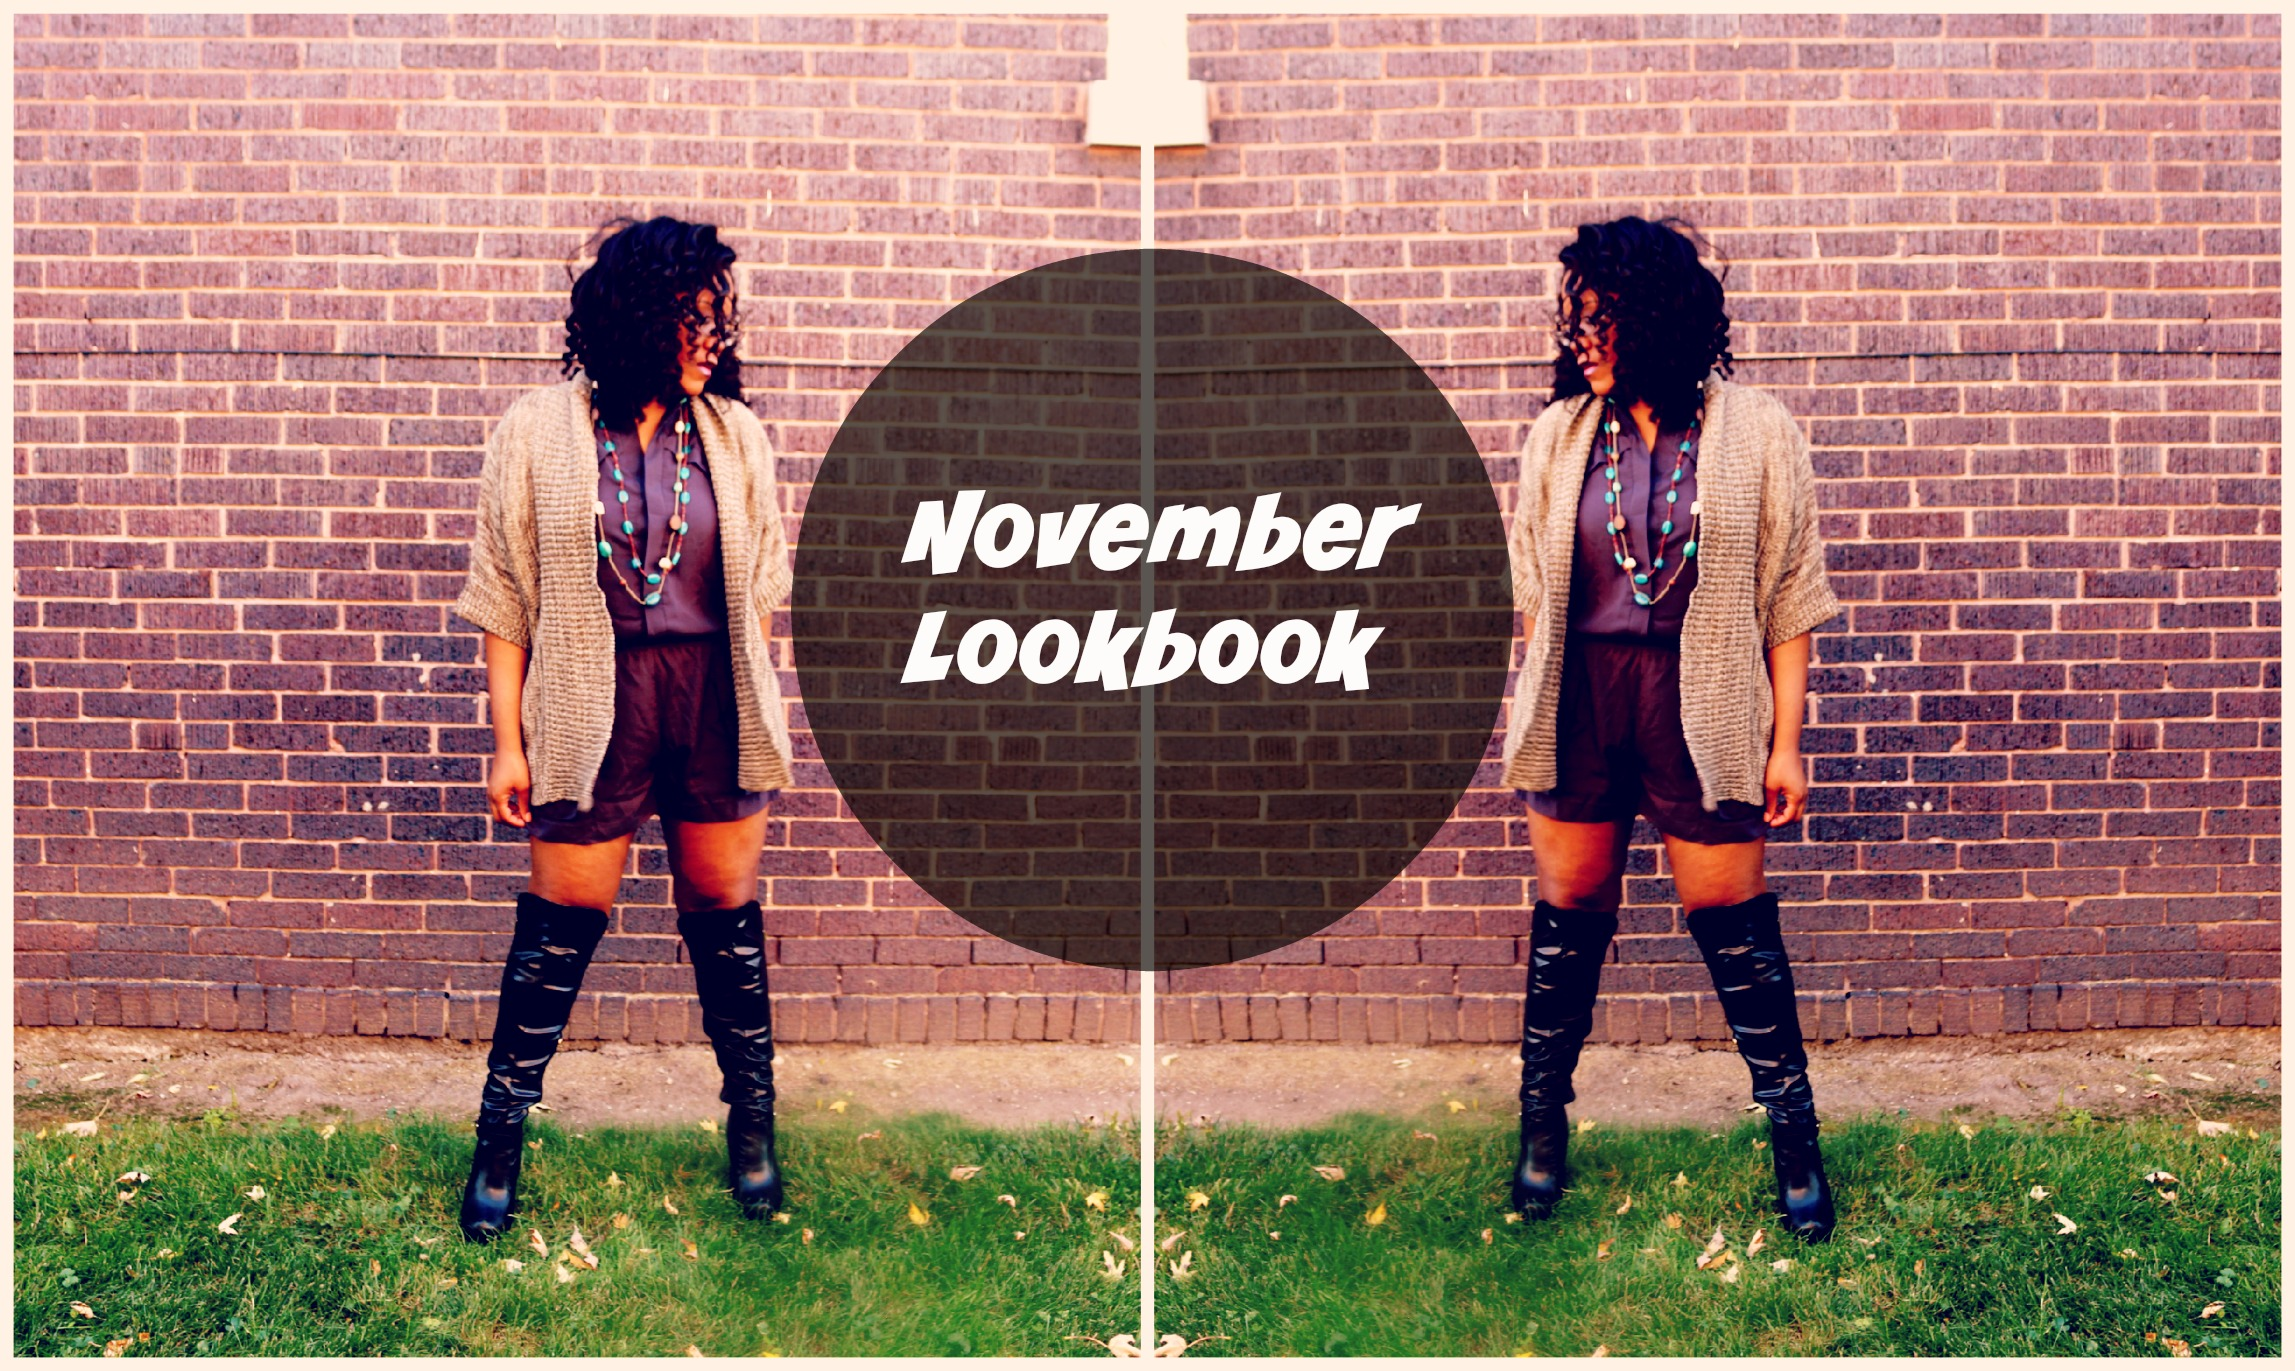 November Lookbook FP Main